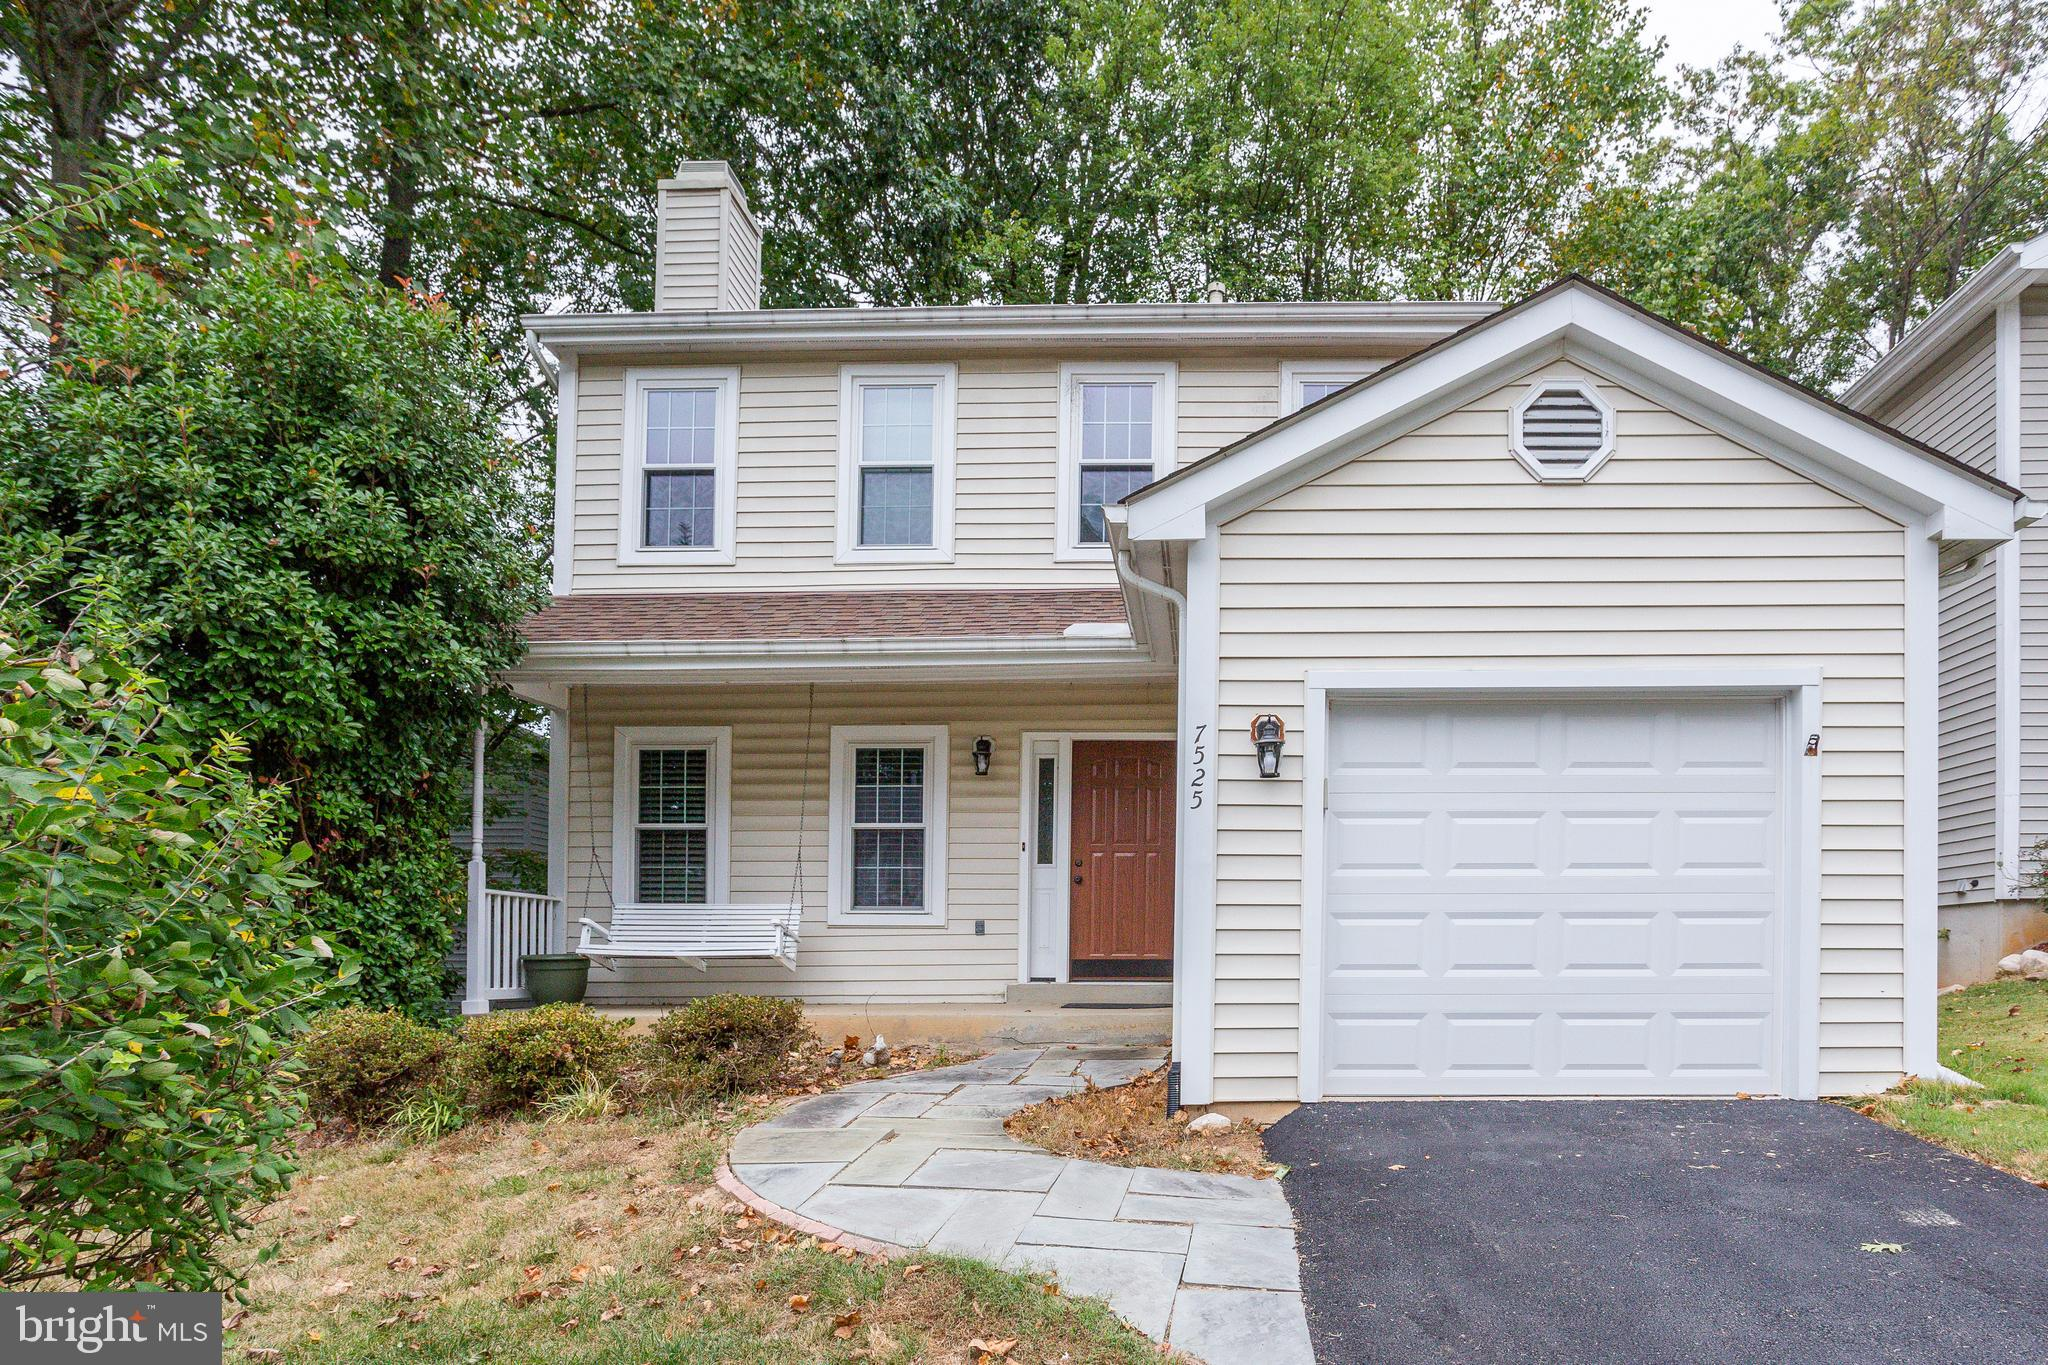 7525 MATTINGLY LANE, GAITHERSBURG, MD 20879